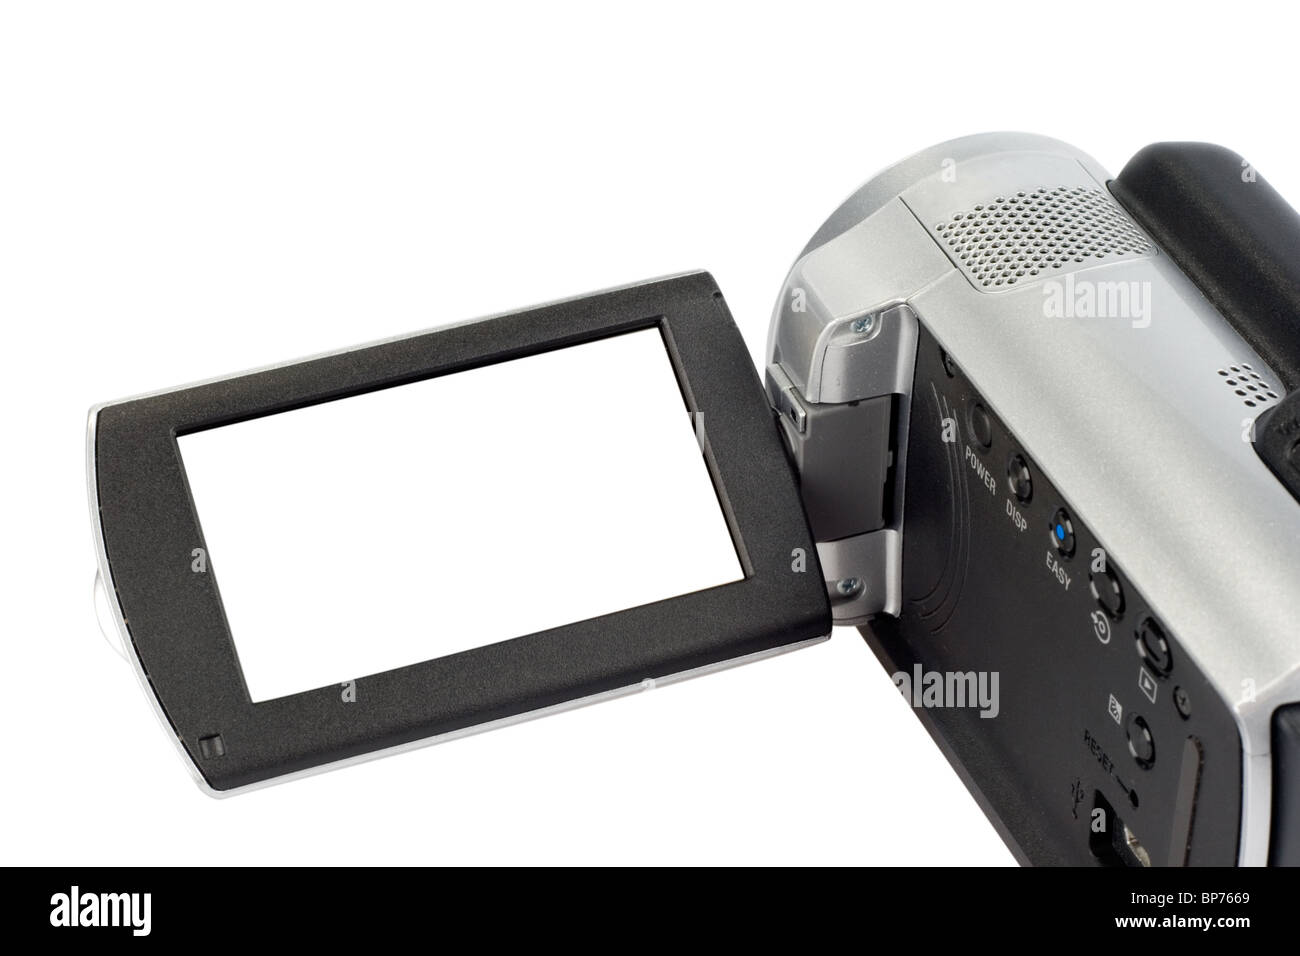 Camcorder with open lcd display - Stock Image